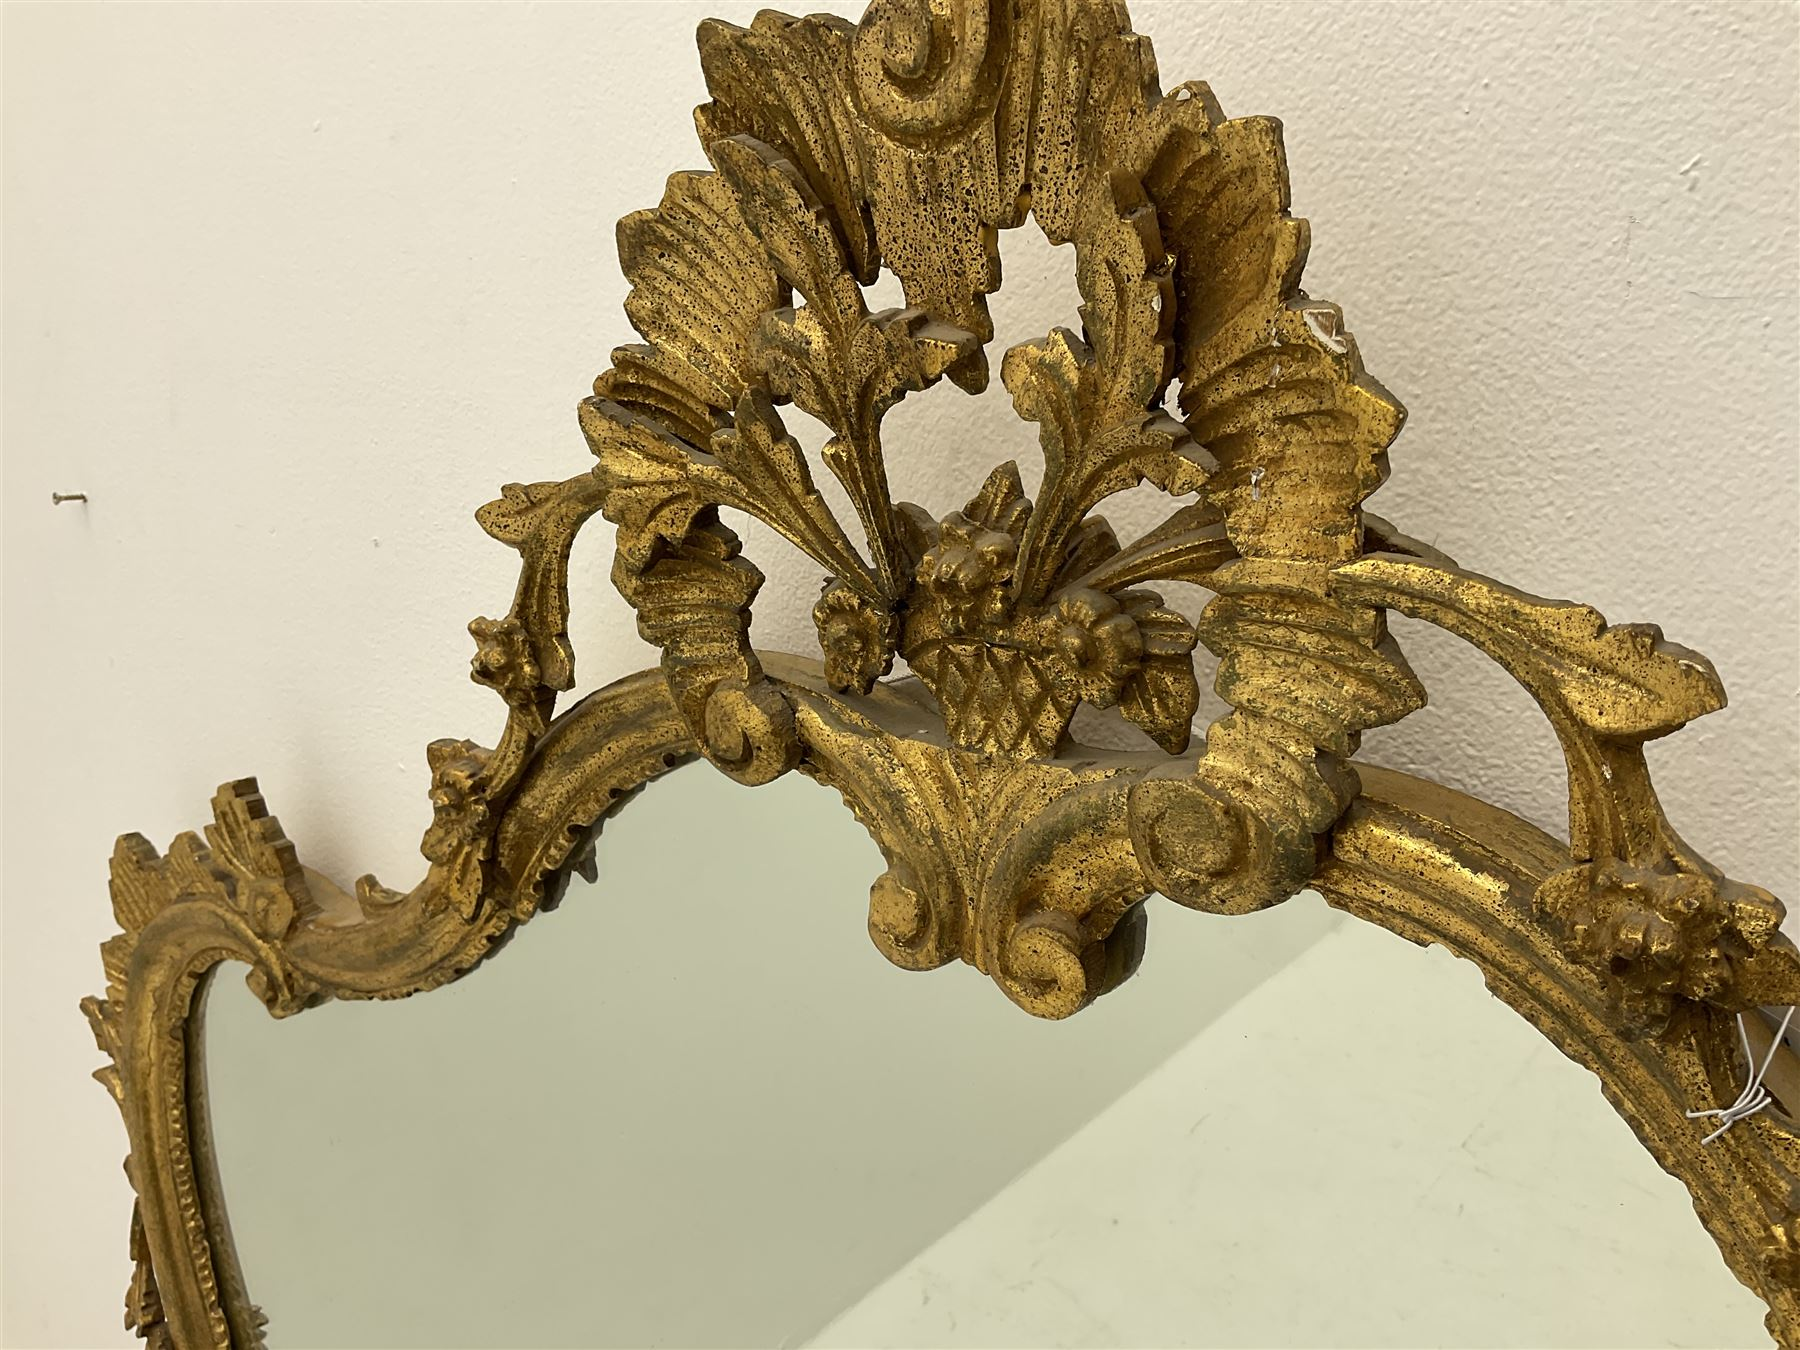 Classical ornate gilt framed shaped wall mirror - Image 2 of 2